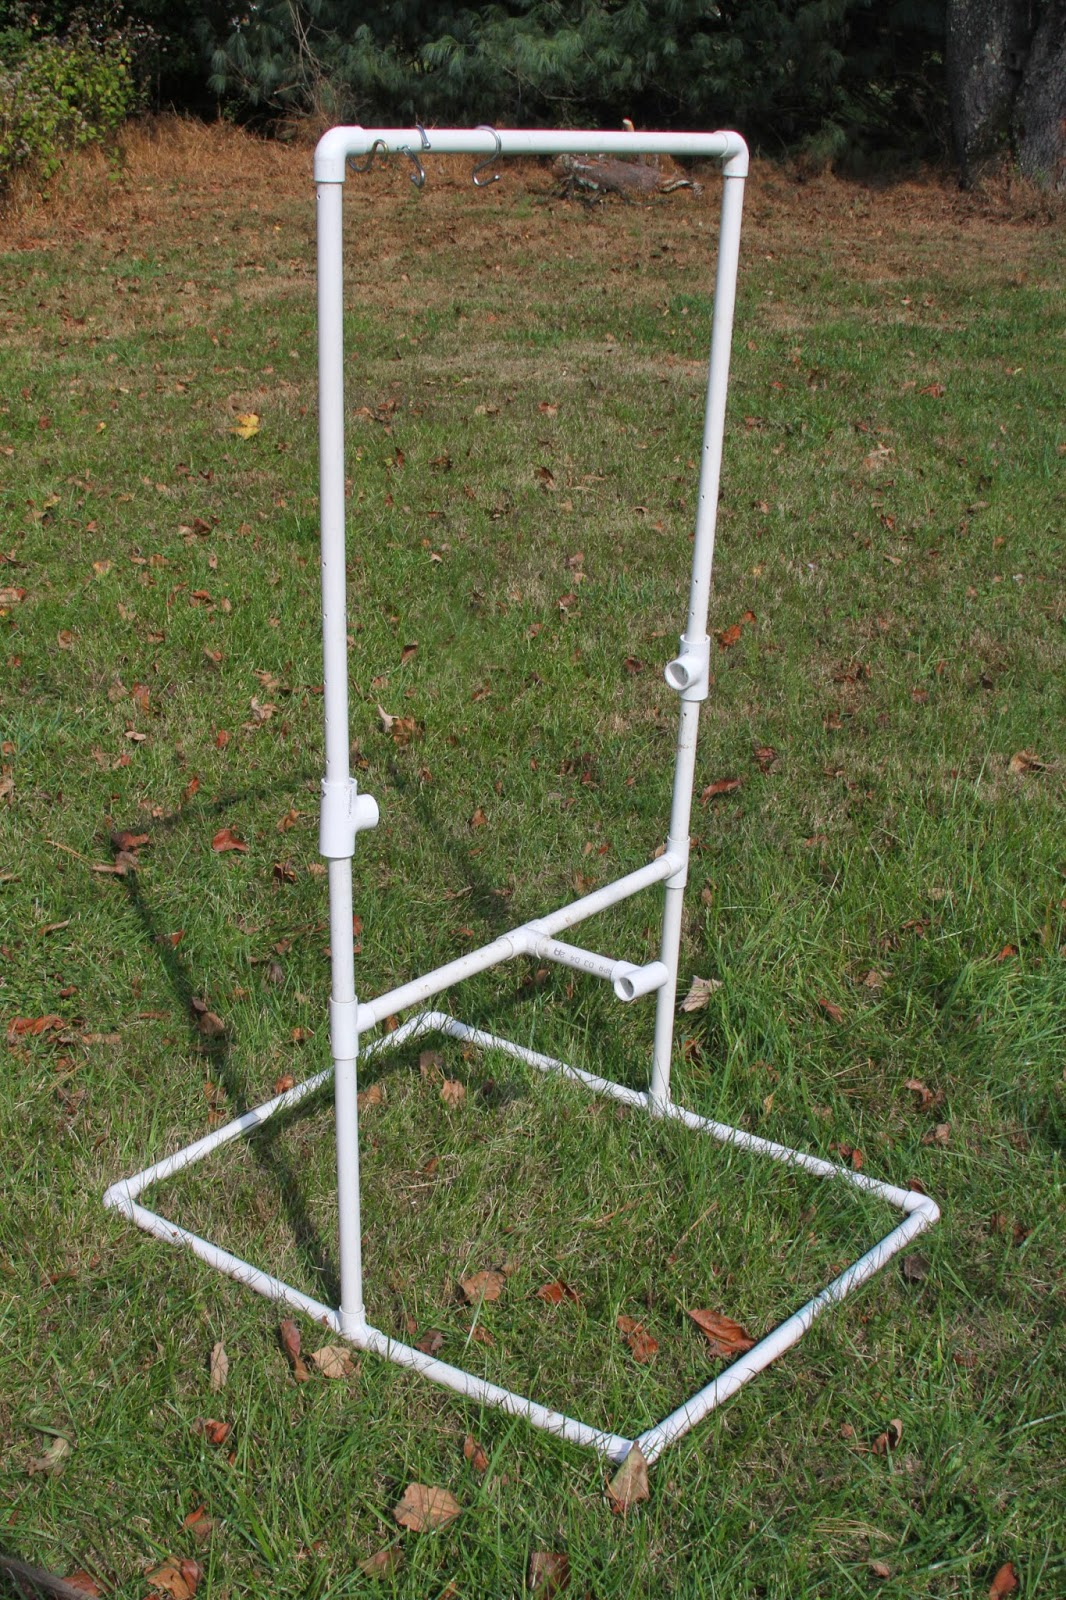 Steve Byland Nature Photography Photo Feeder Stand For